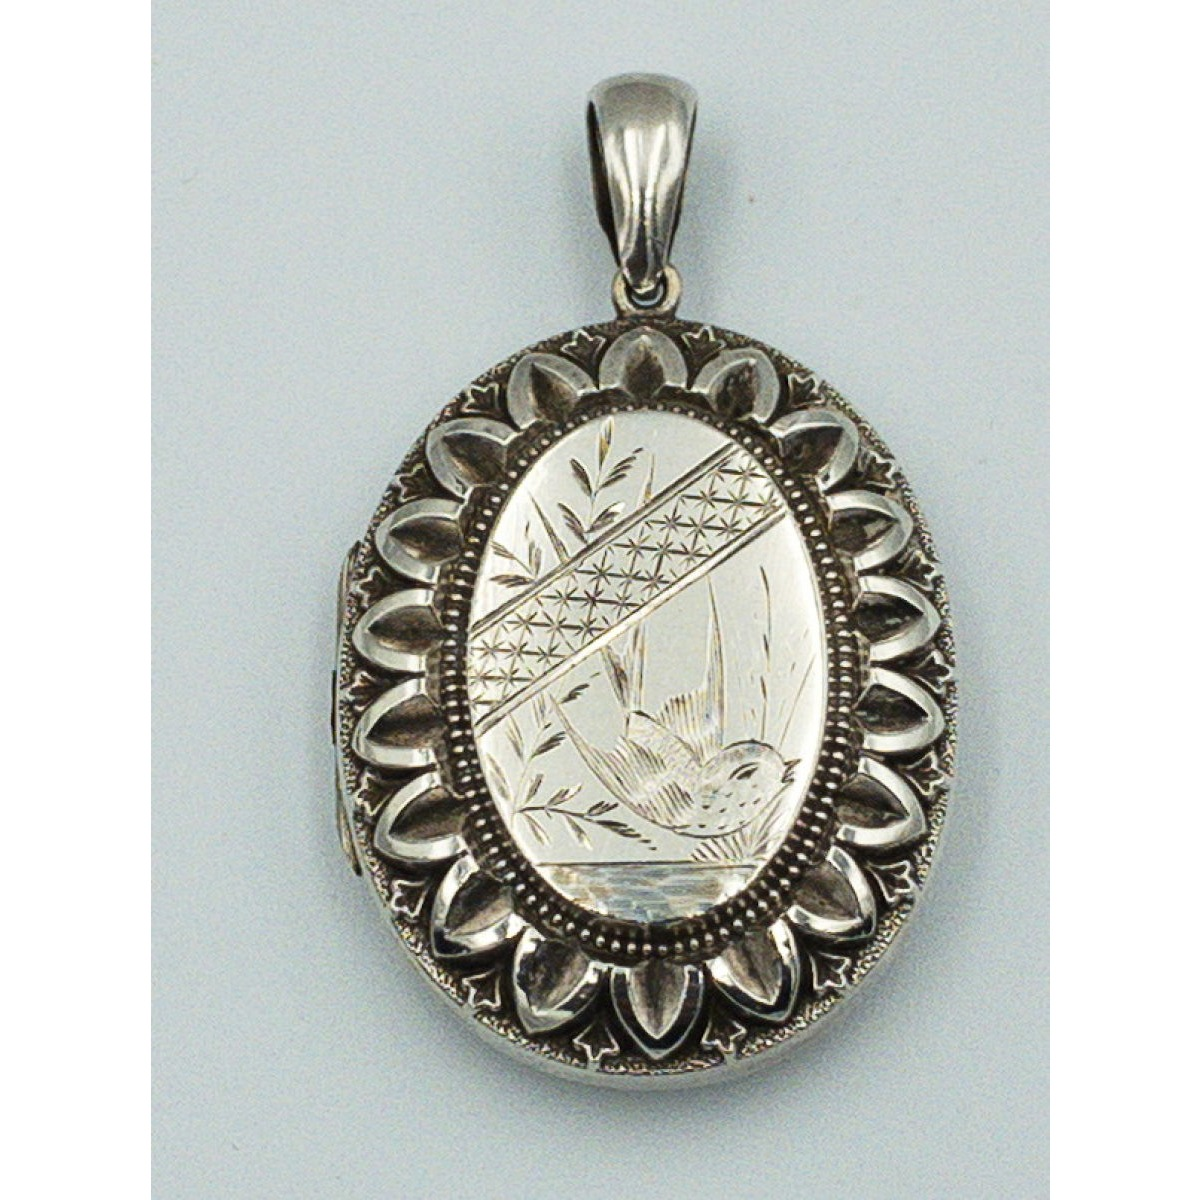 Outstanding ZigZag Border Large Engraved Swallow in Flight Victorian Antique English Silver Locket